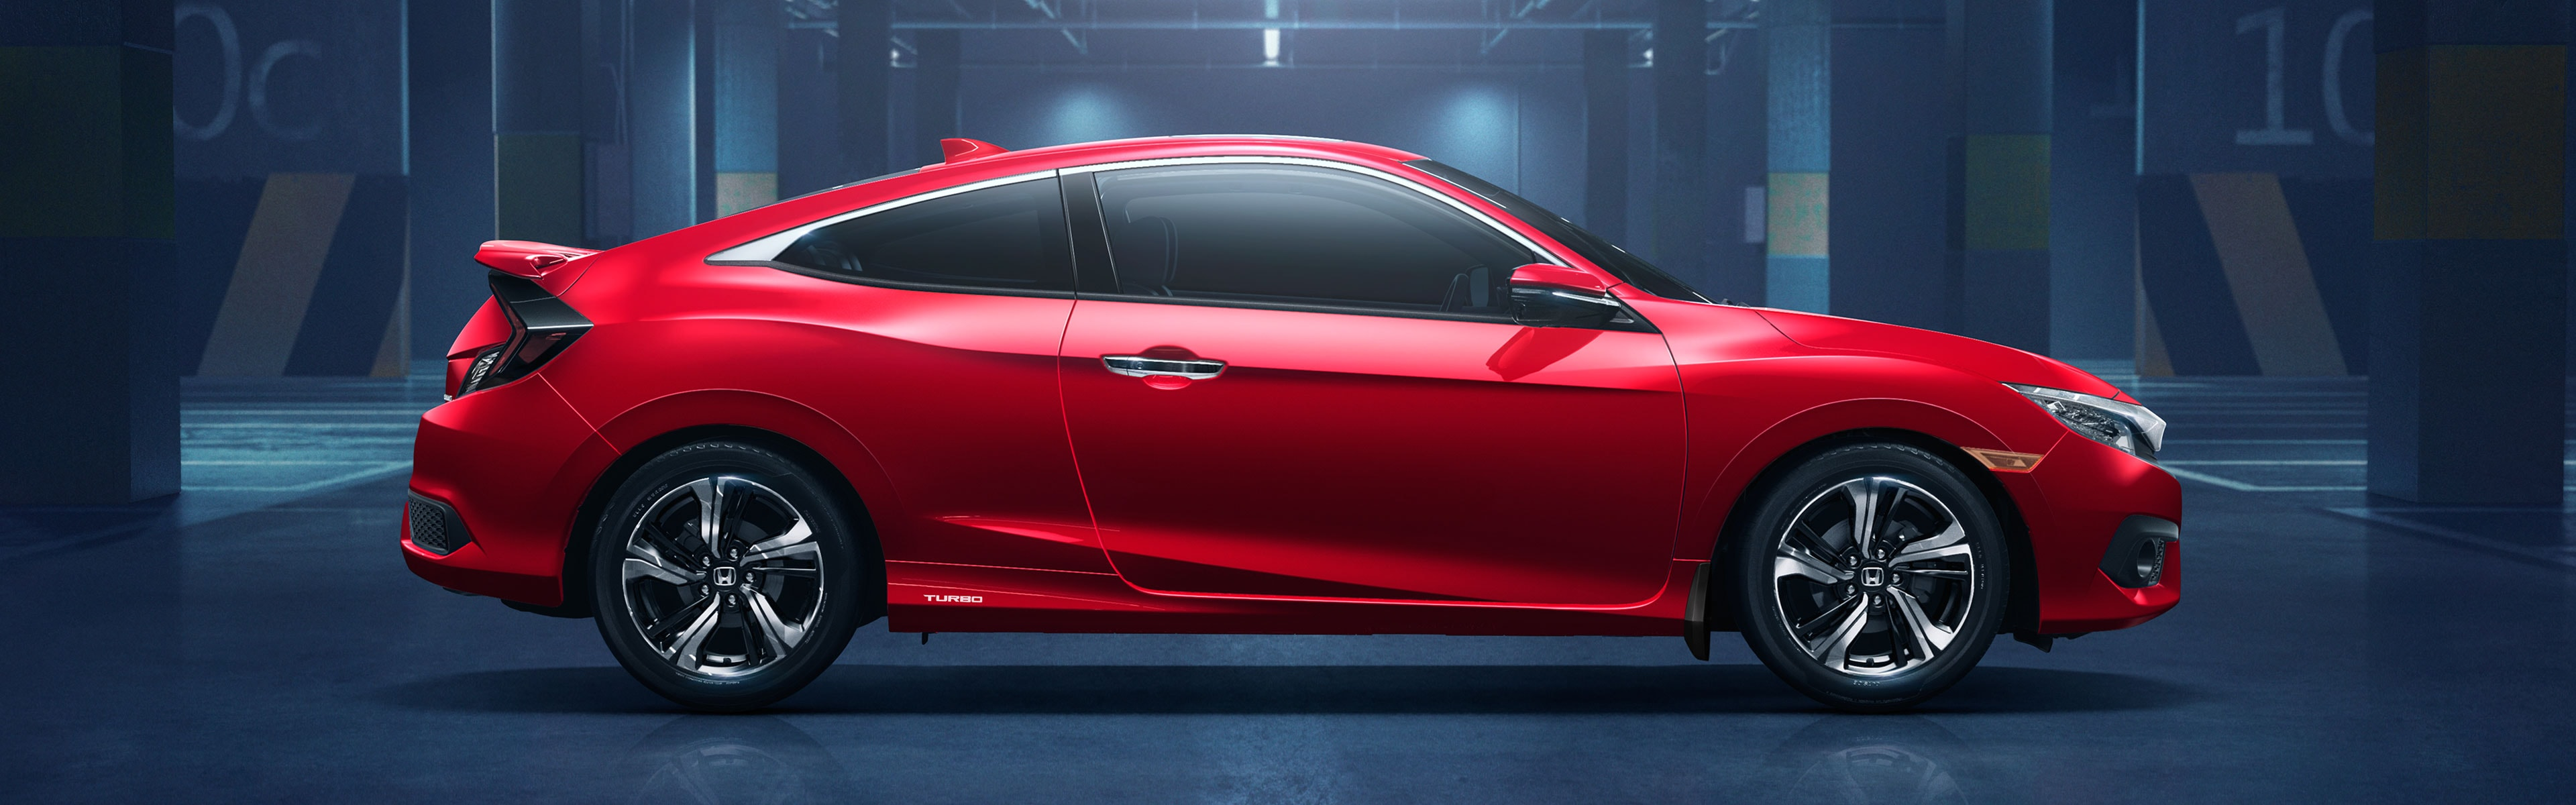 Image of 2016 Civic Coupe